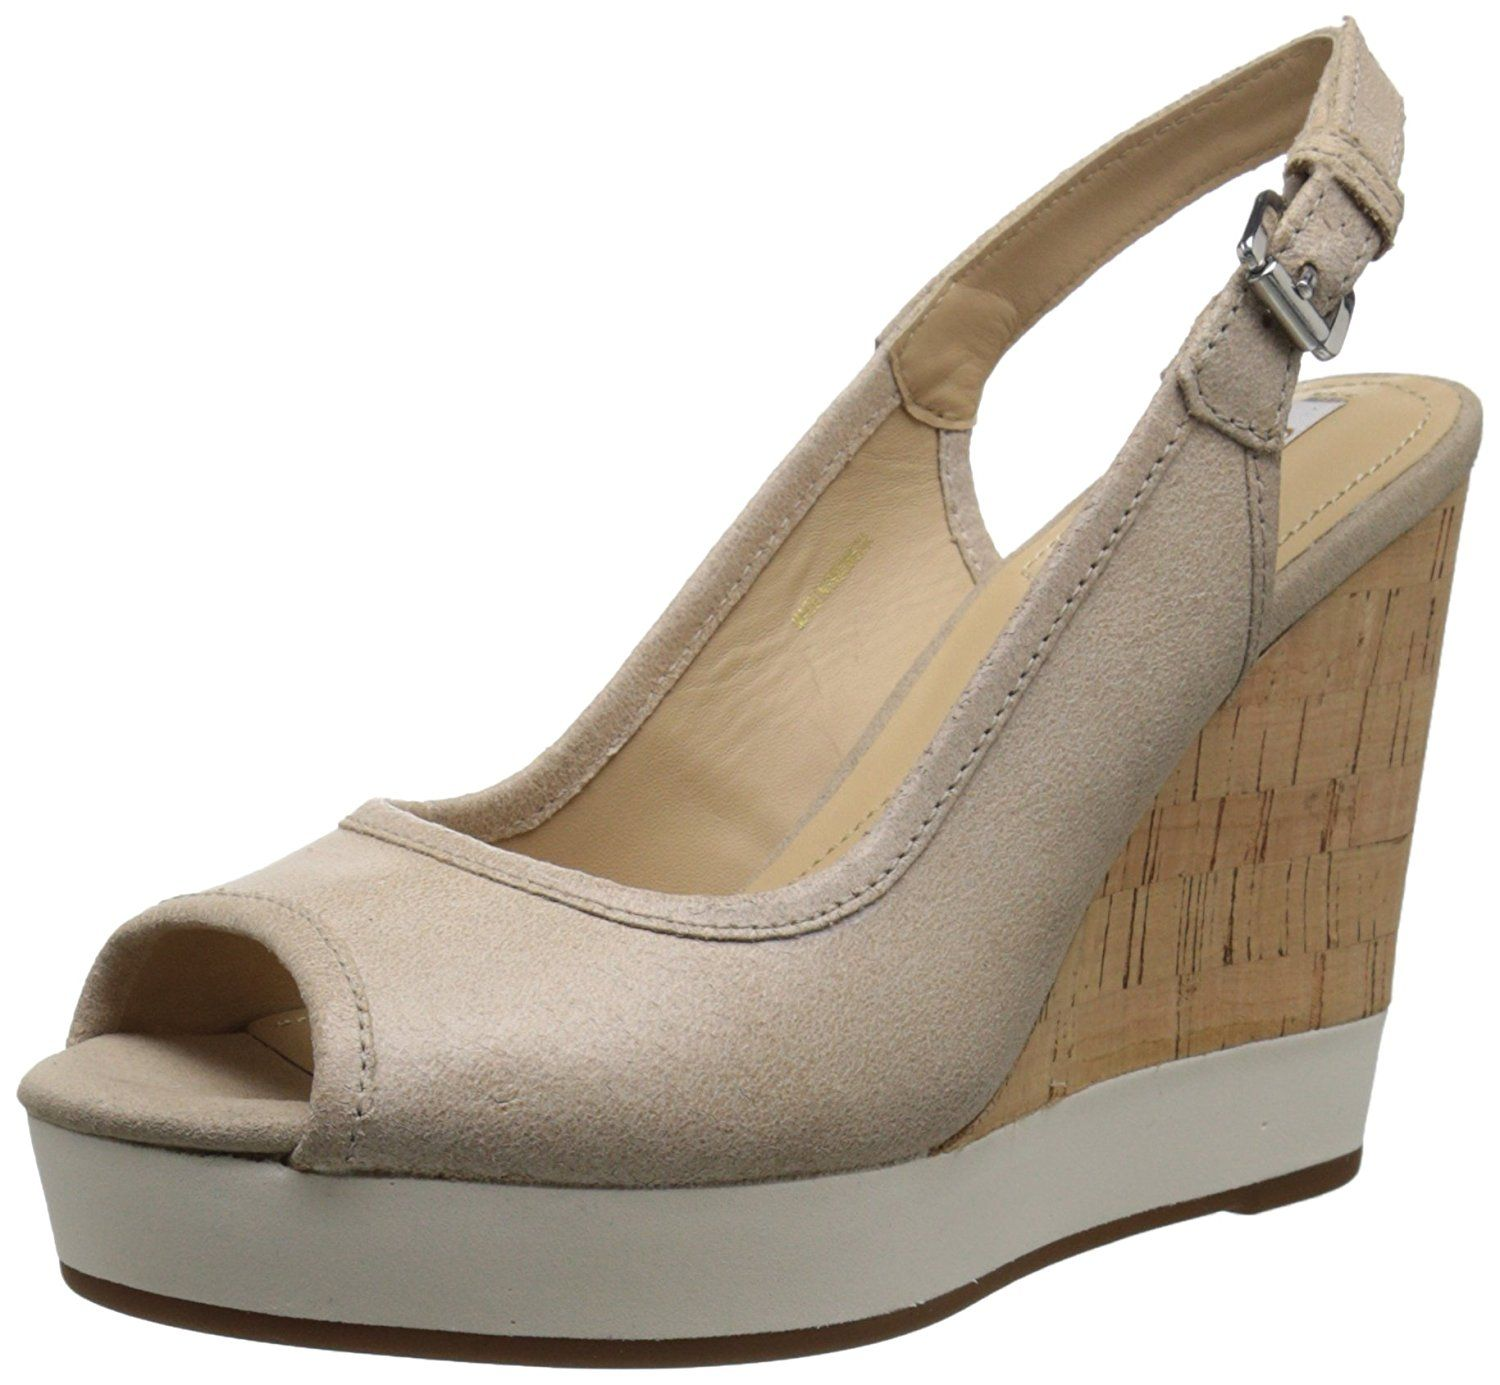 561192bc9477 Geox Women s D Janira Wedge Sandal -- More info could be found at the image  url. (This is an affiliate link)  sandals